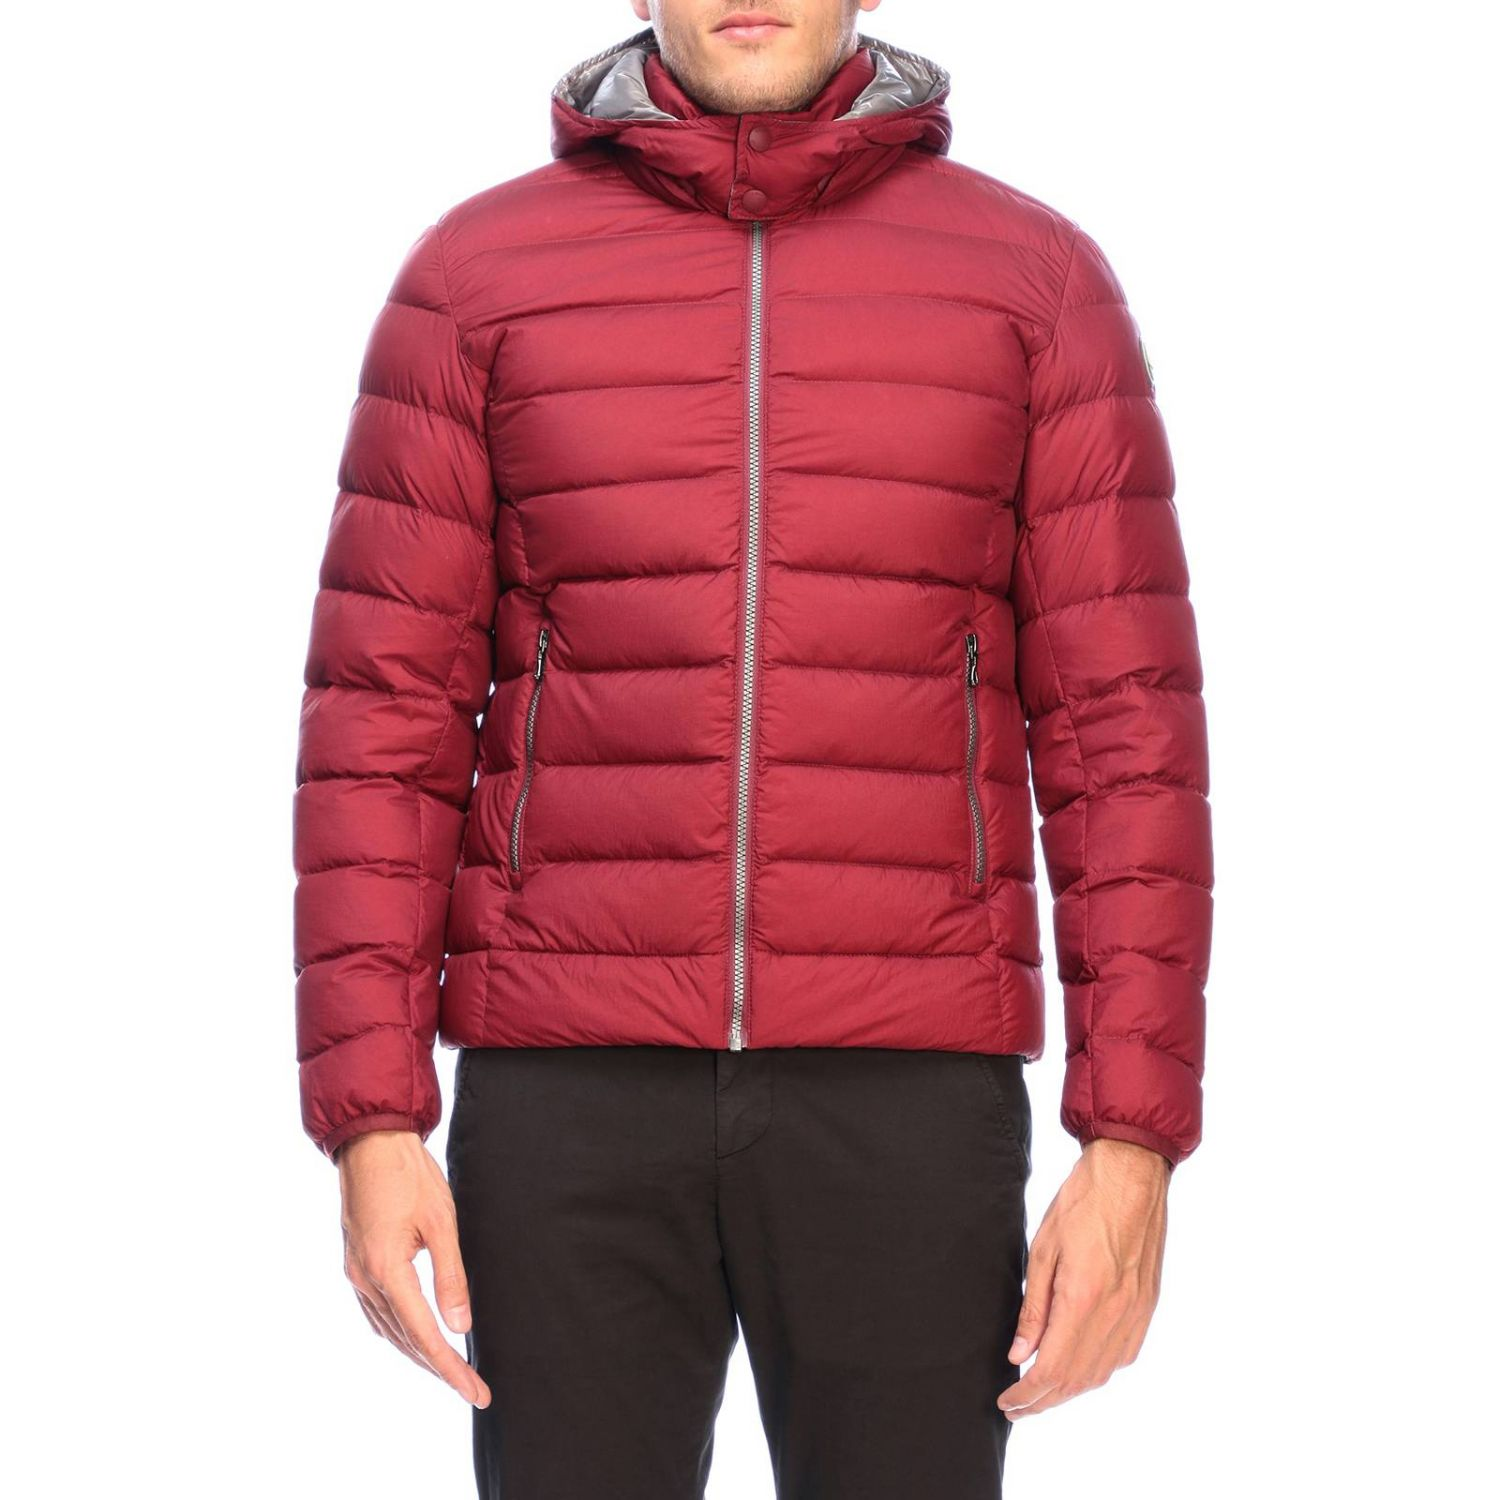 Jacket men Colmar burgundy 1